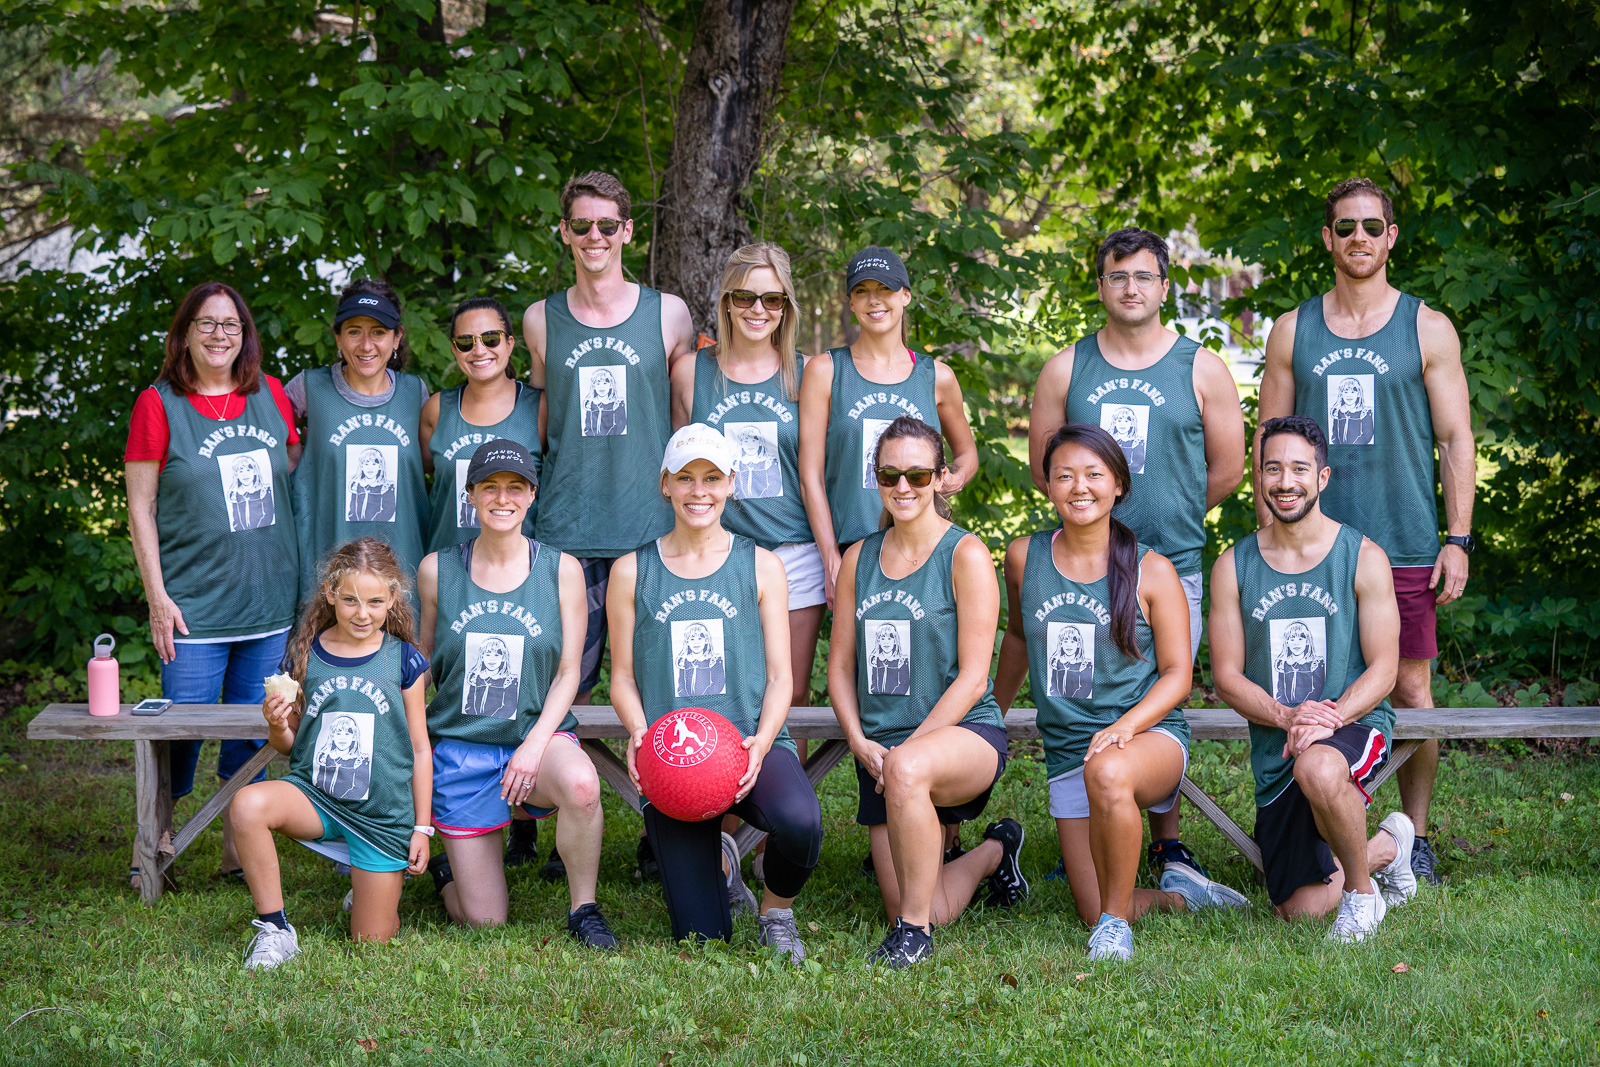 Brides wedding kickball team